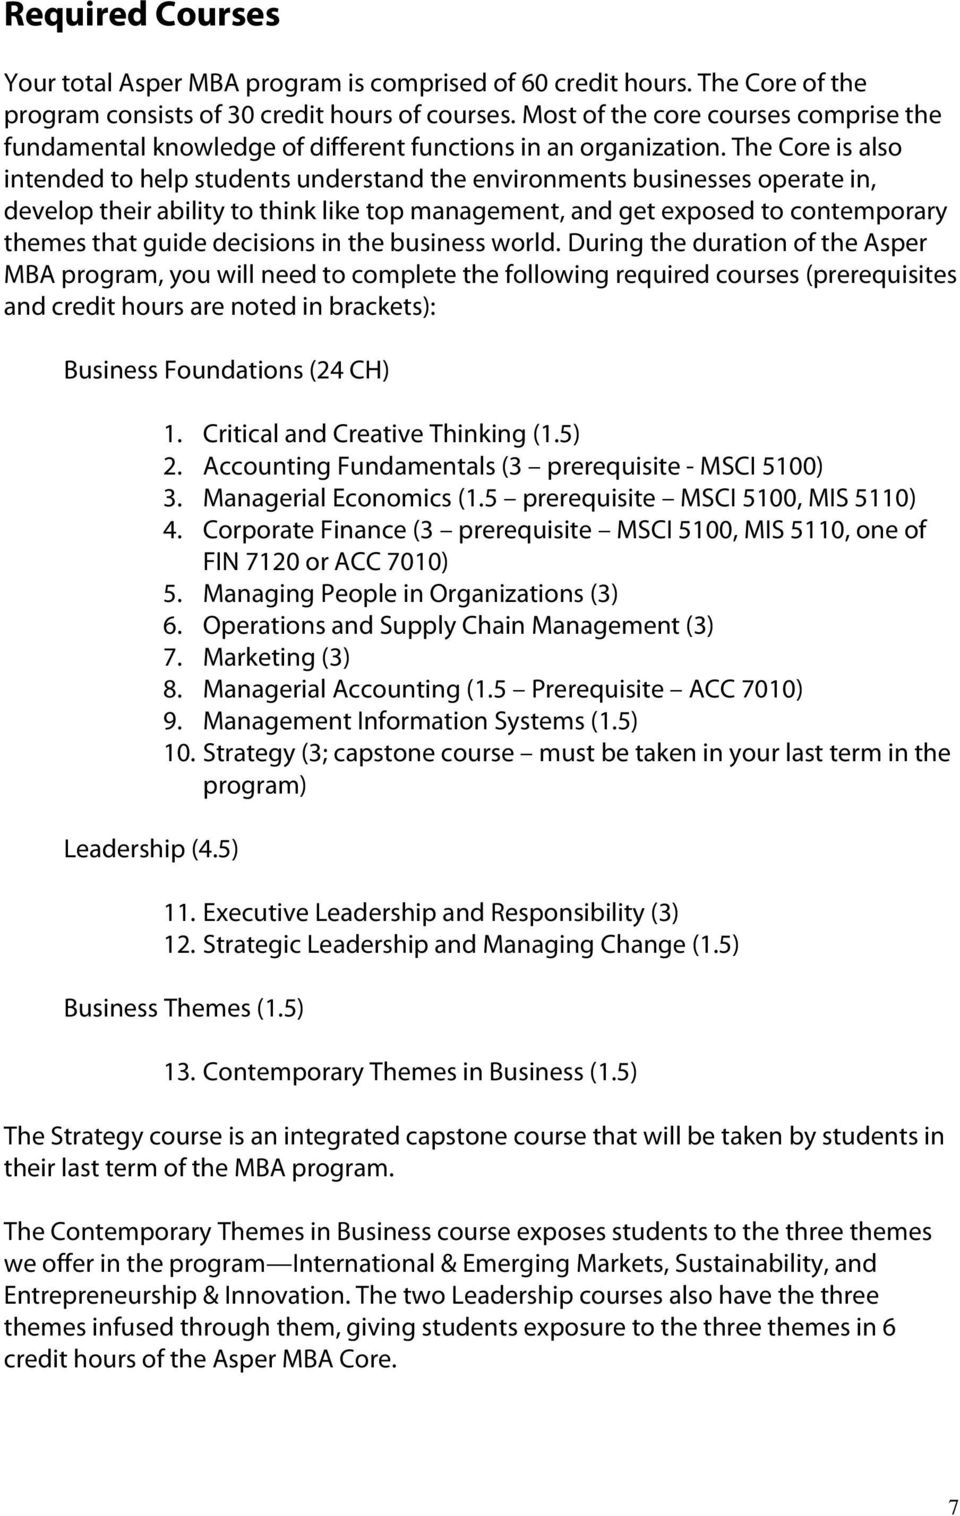 The Core is also intended to help students understand the environments businesses operate in, develop their ability to think like top management, and get exposed to contemporary themes that guide